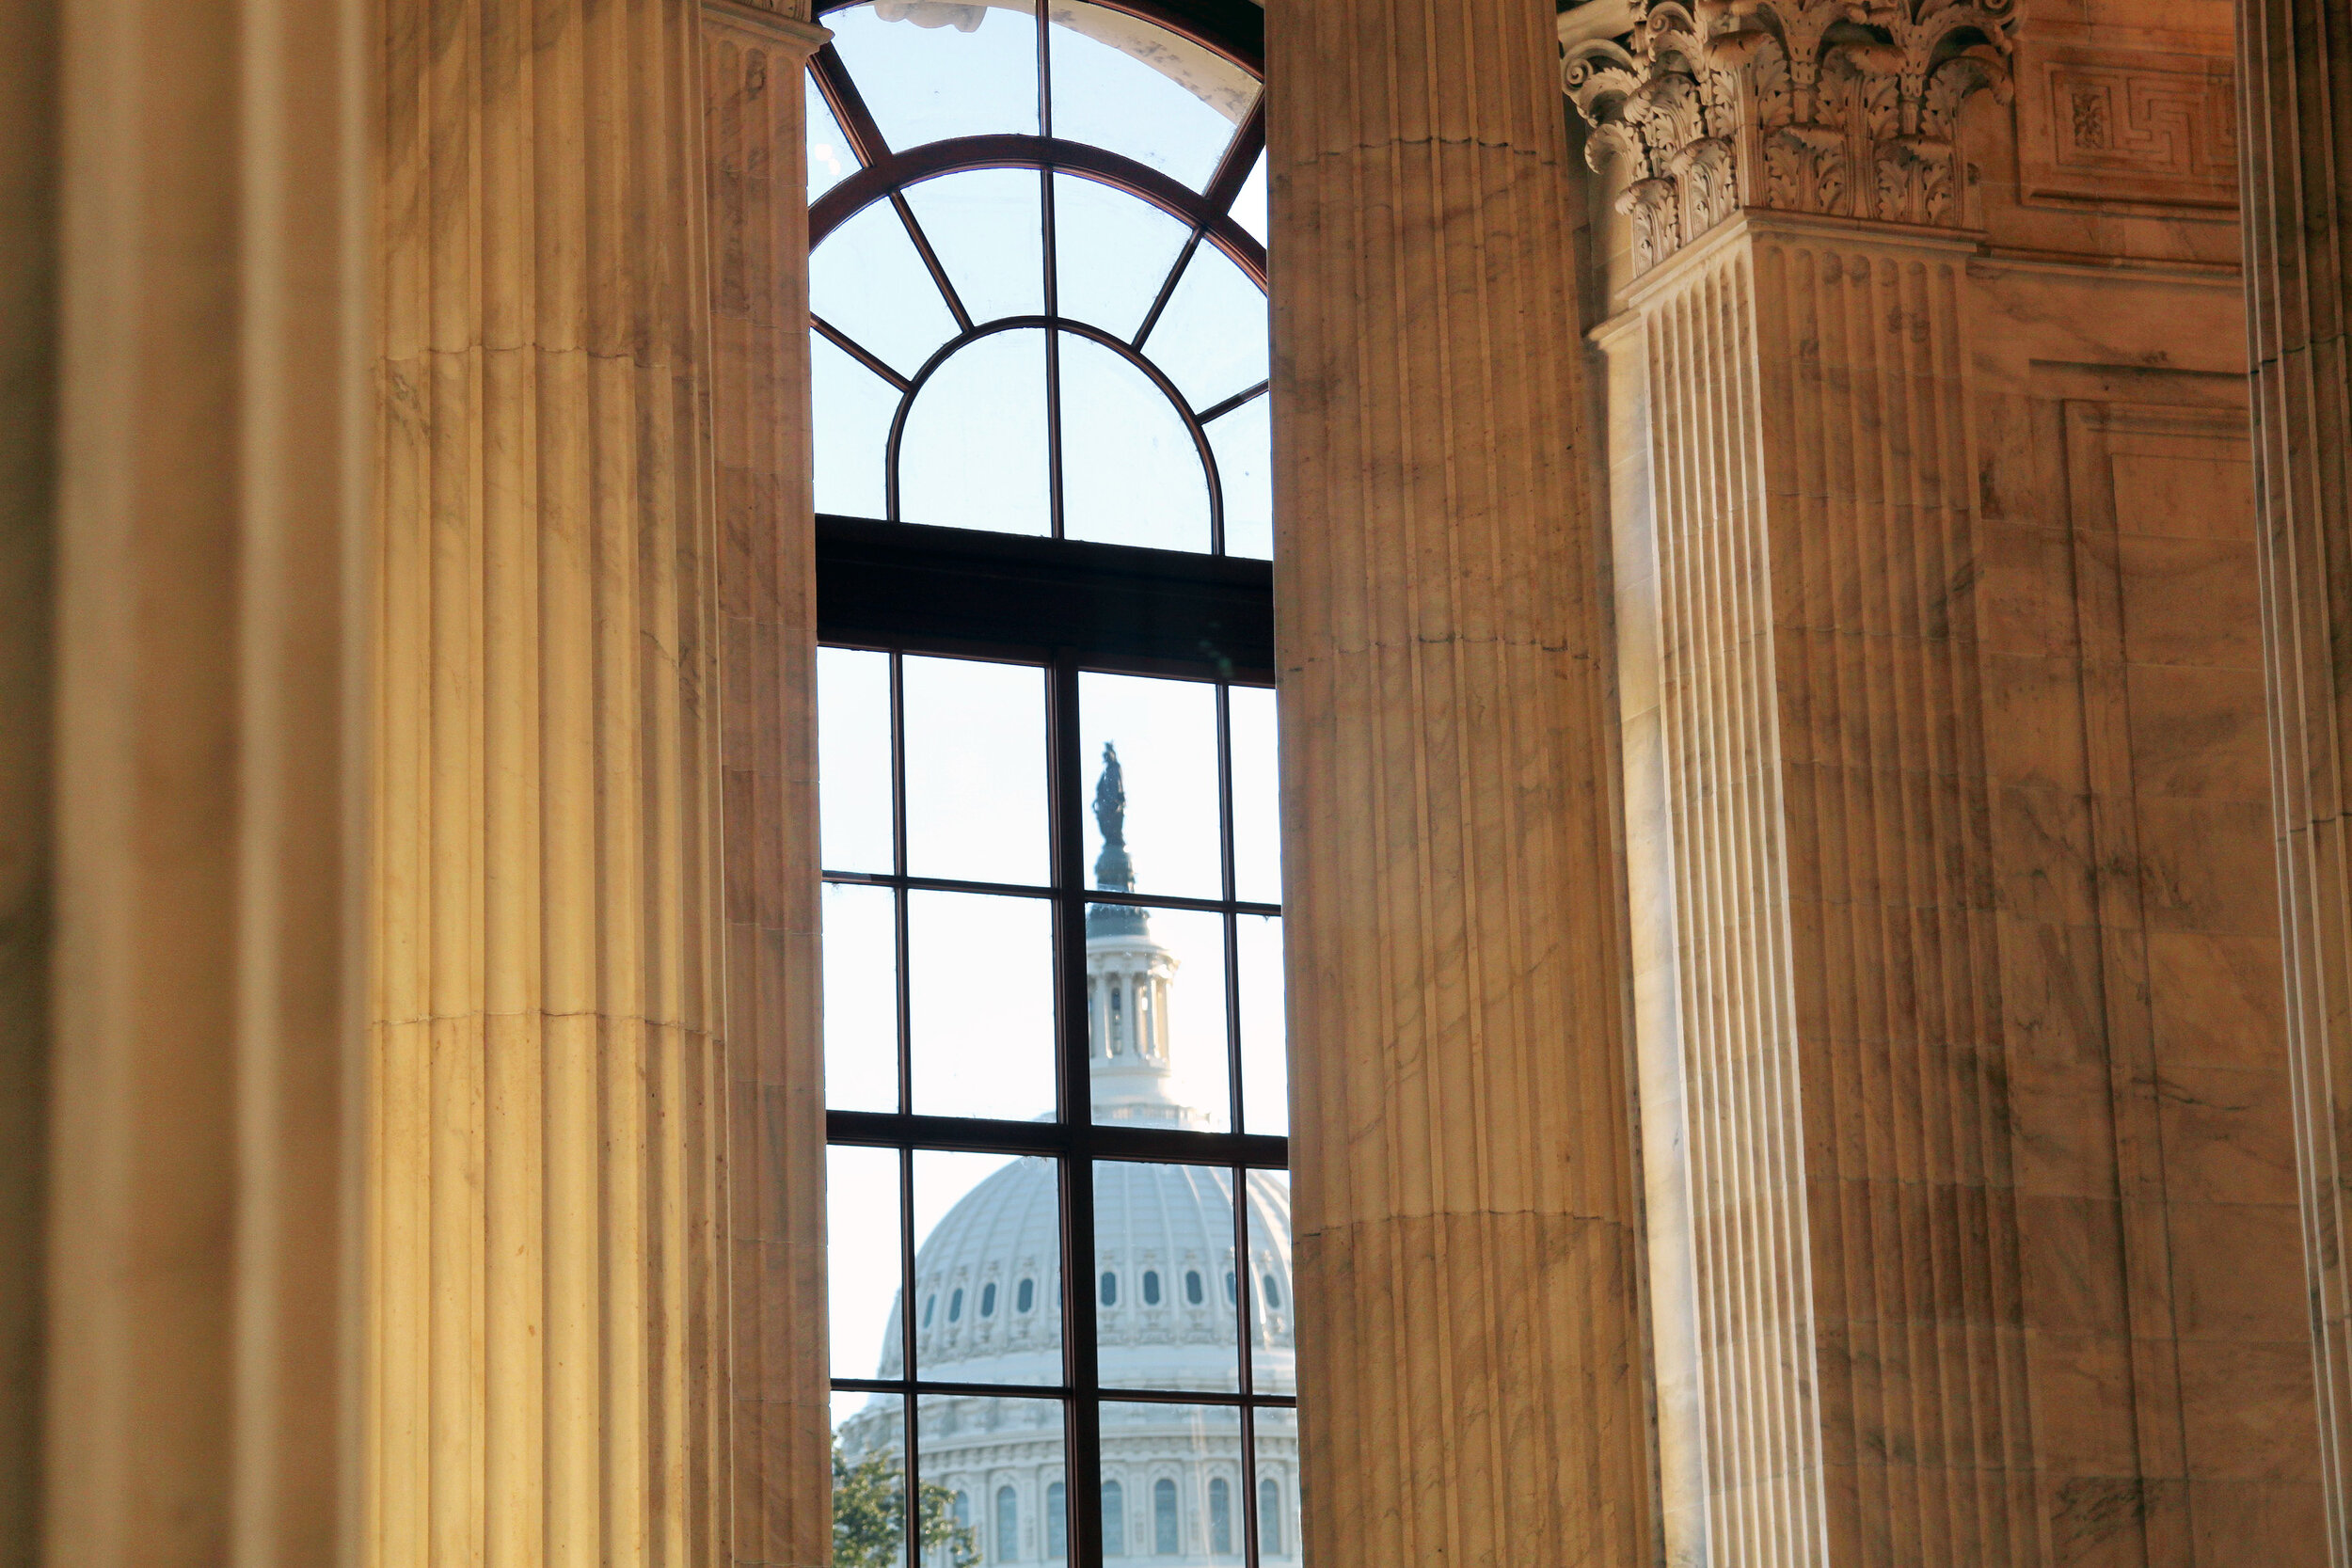 Location:  Russell Rotunda: Washington, D.C.